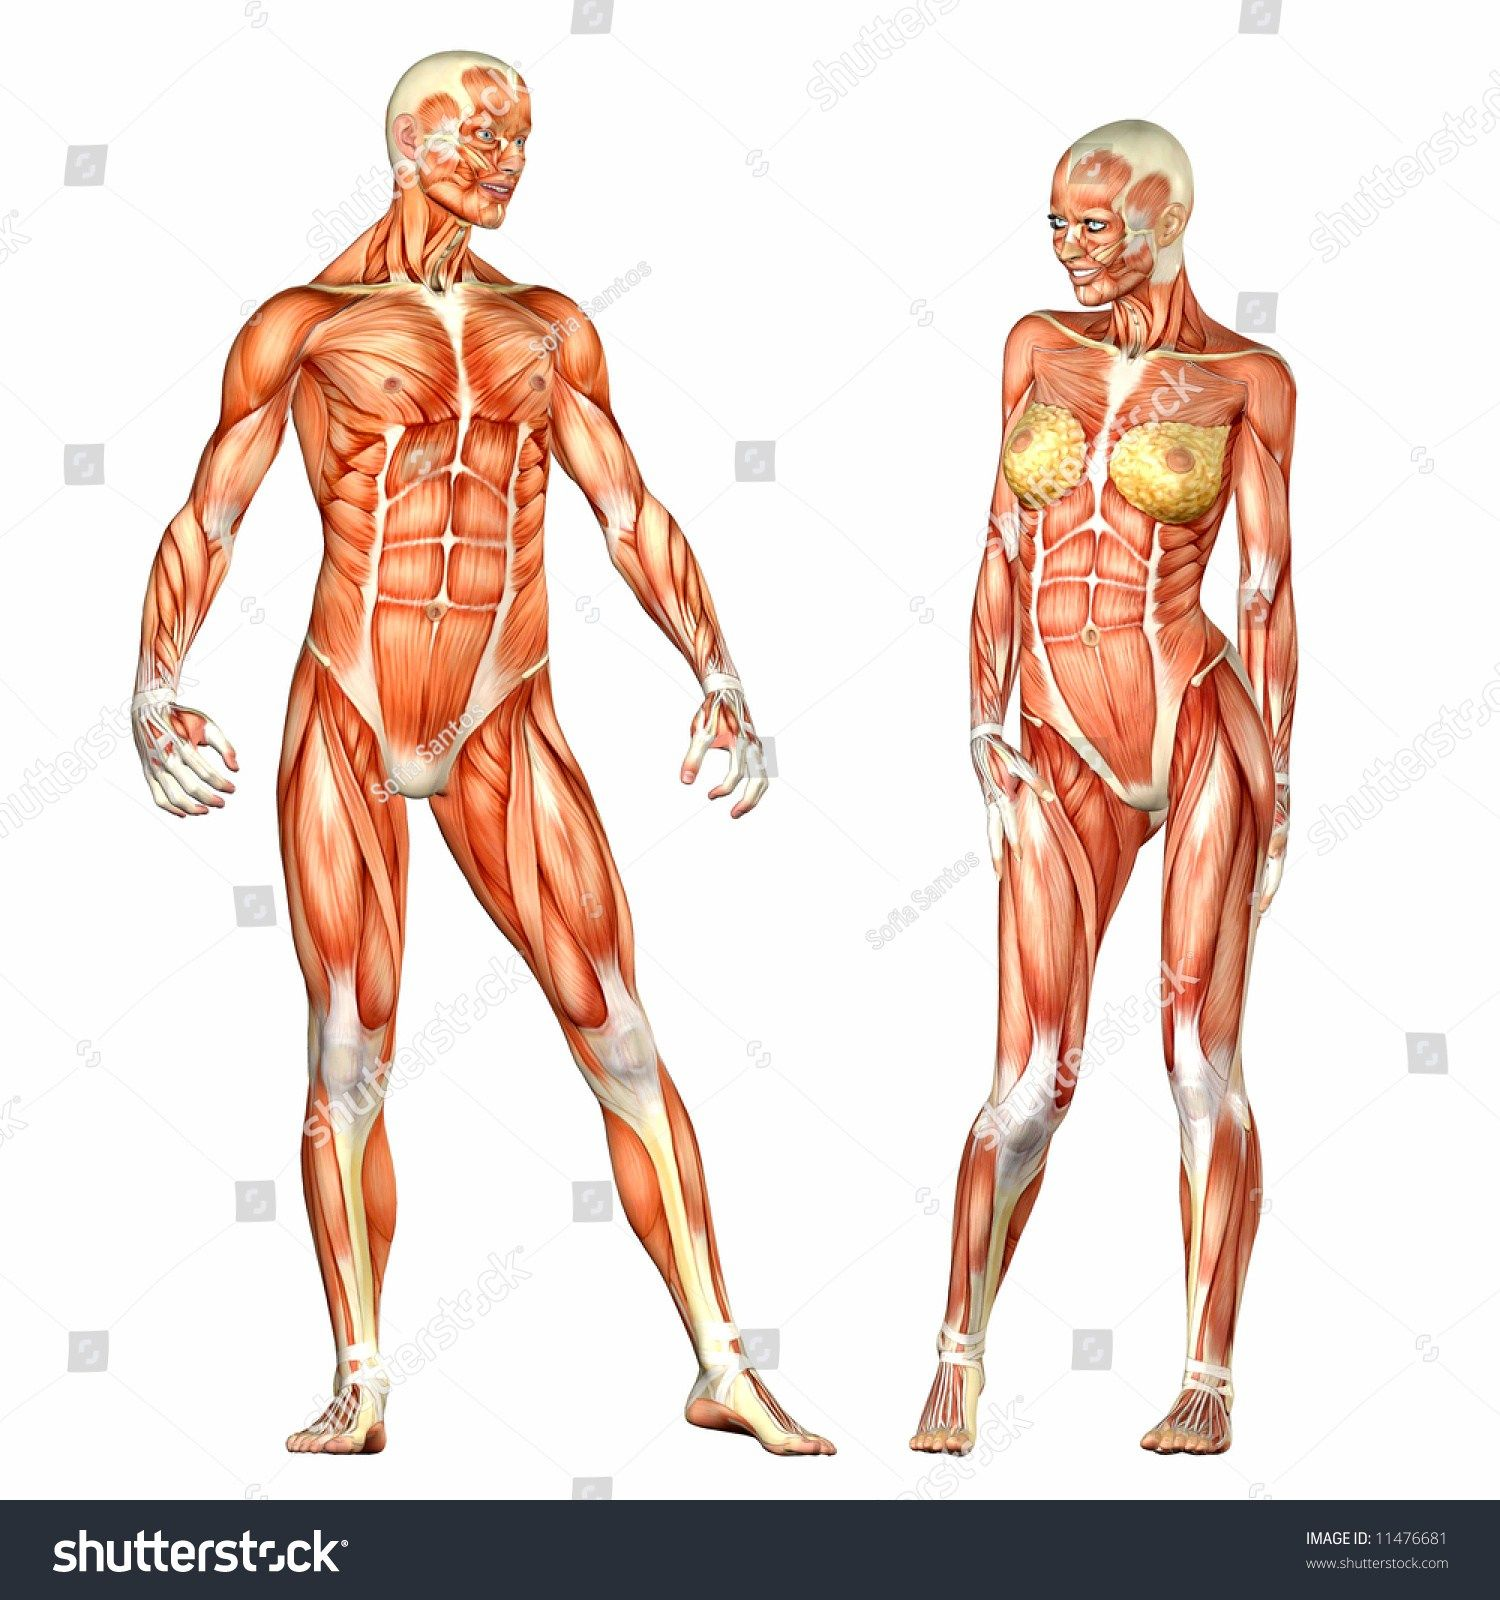 Pin On Human Anatomy Pictures